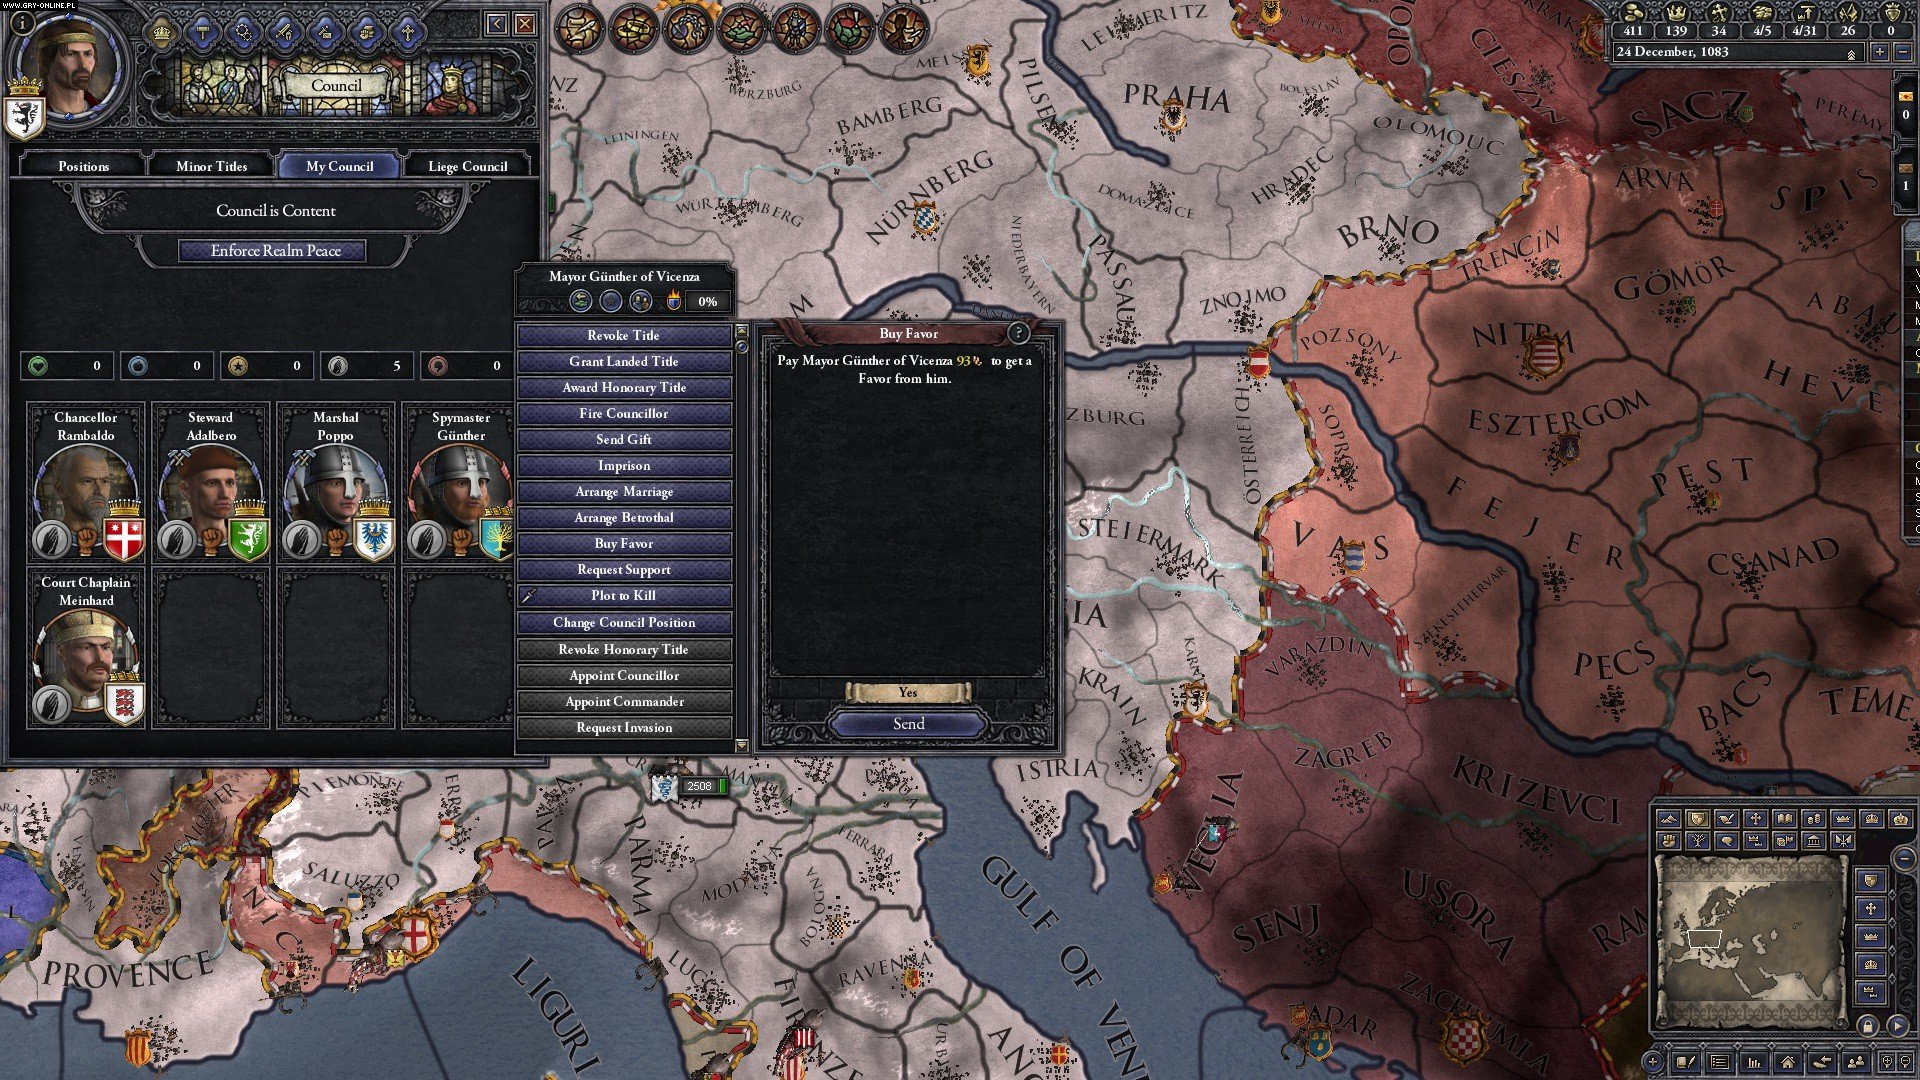 Crusader Kings II: Conclave PC Gry Screen 3/5, Paradox Development Studio, Paradox Interactive